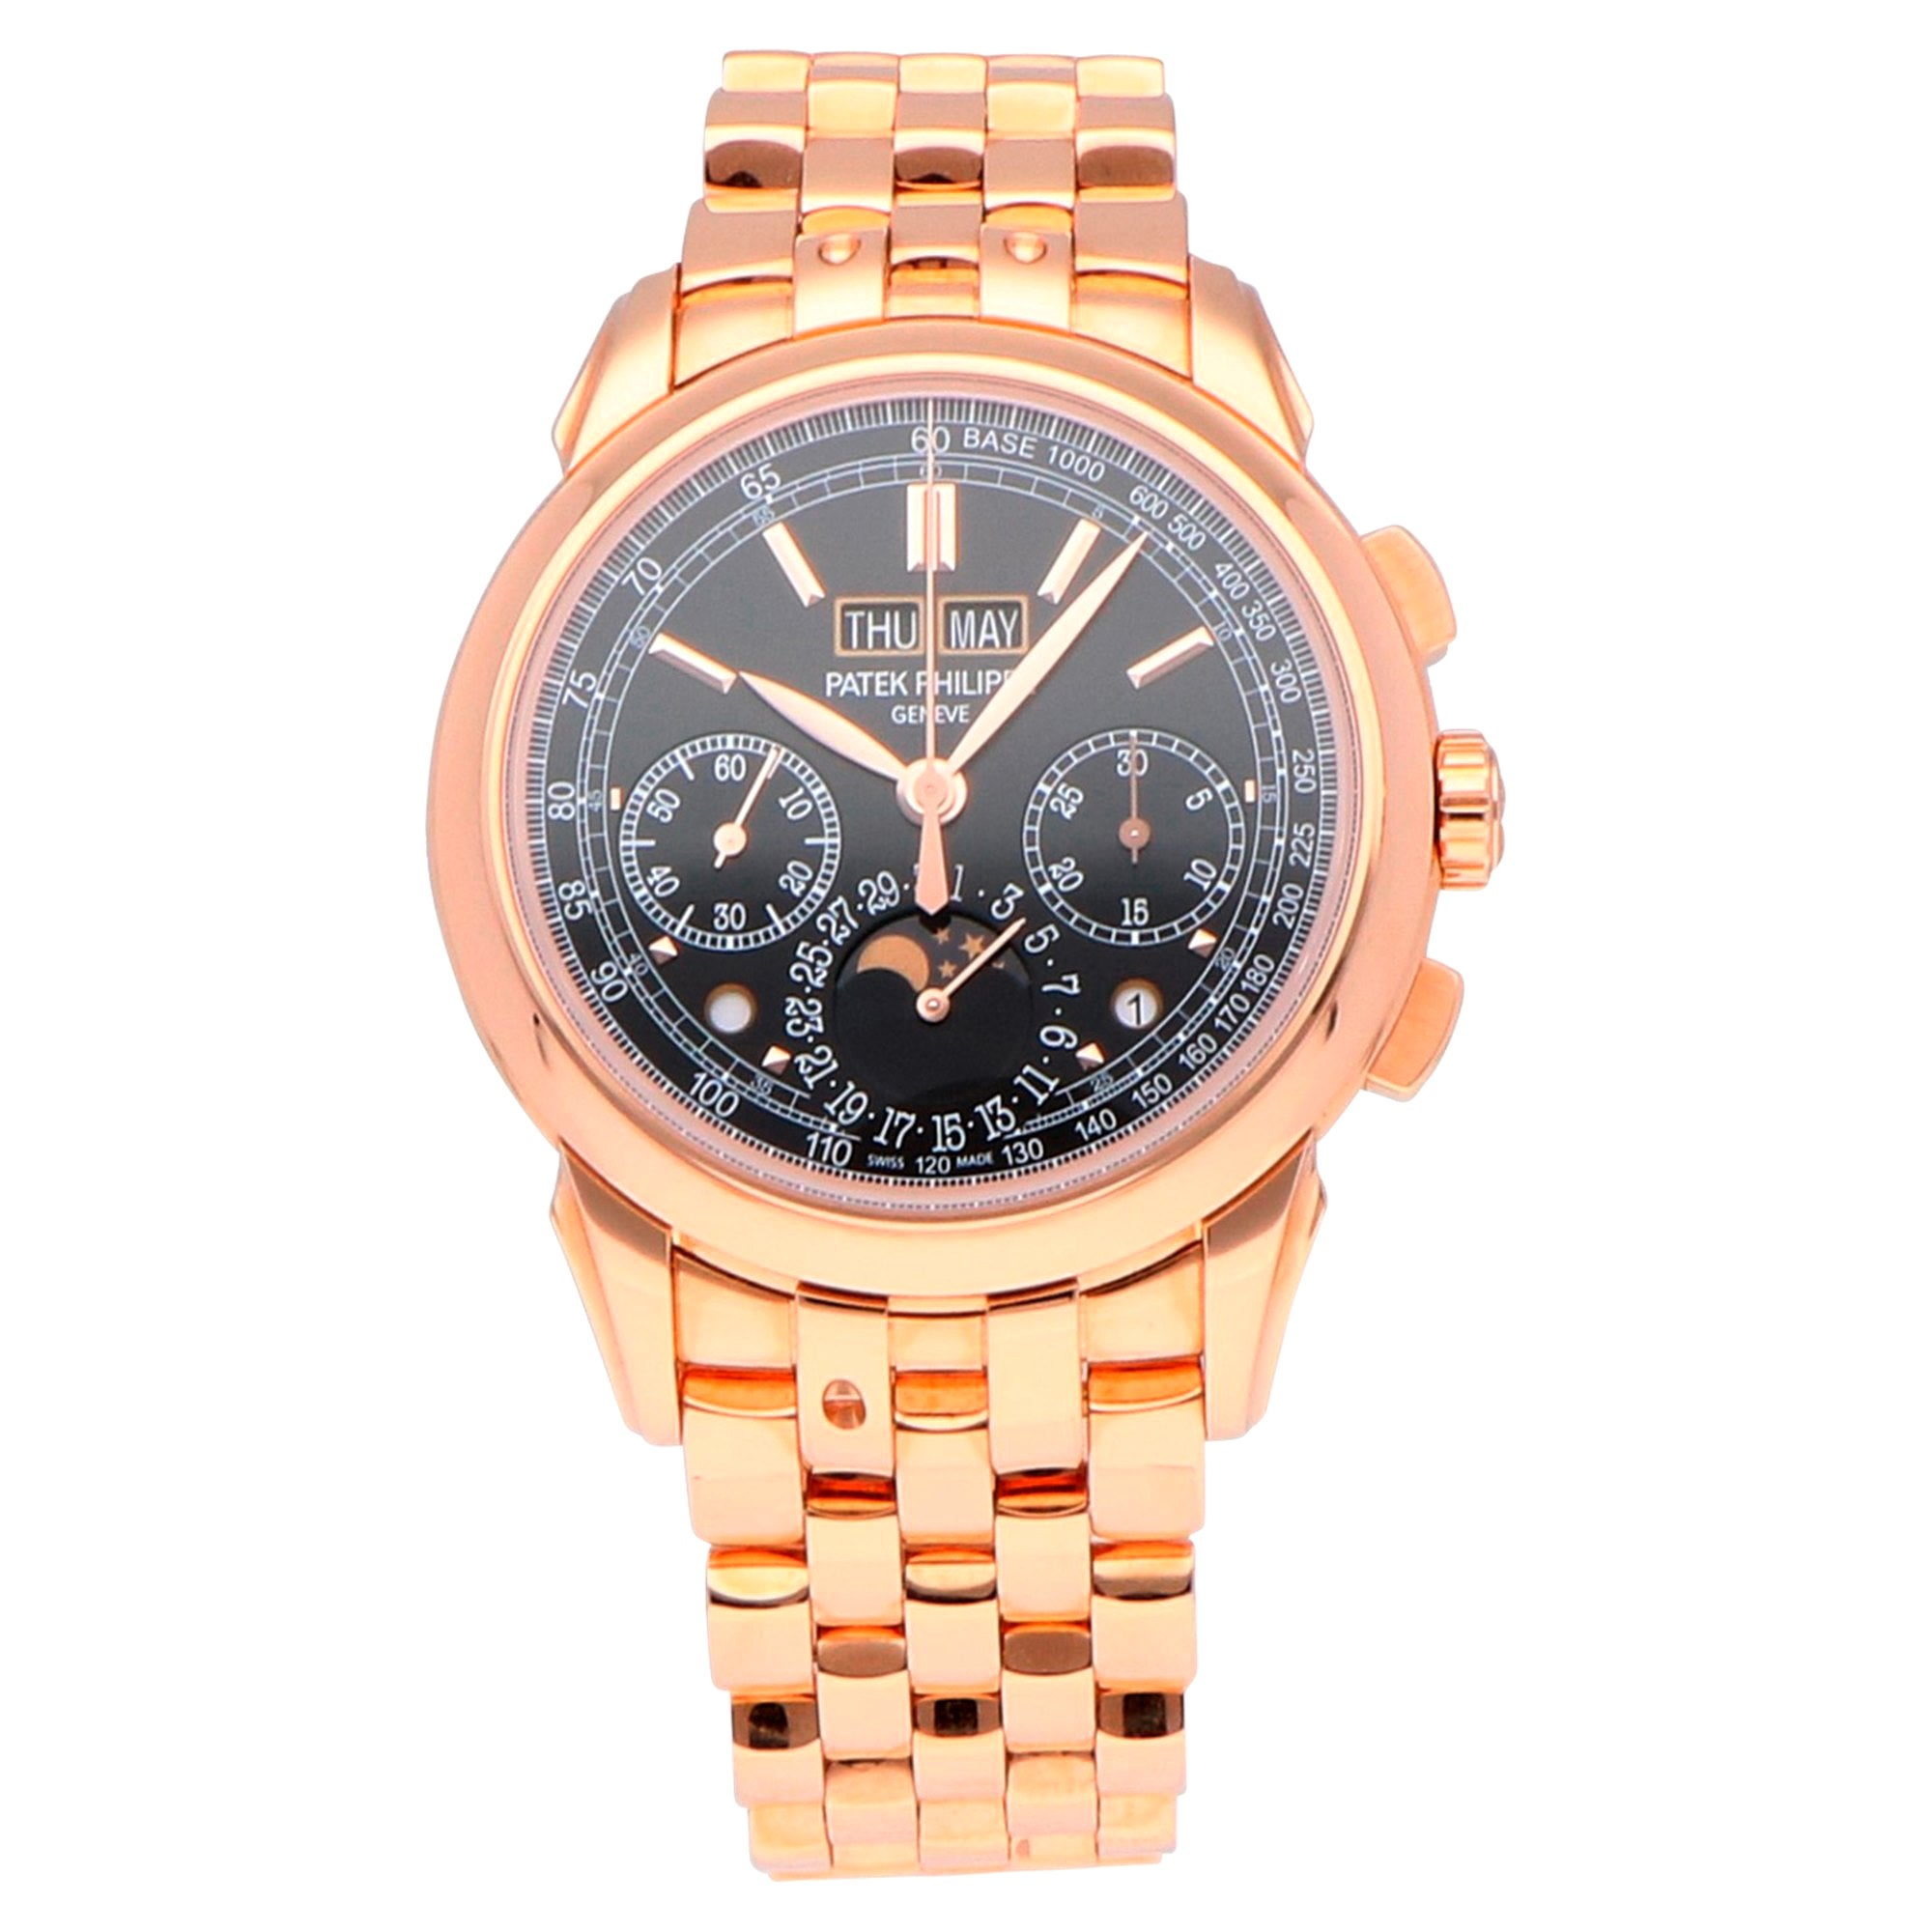 Patek Philippe Grand Perpetual Calendar Chronograph Rose Gold 5270/1R-001 Watch